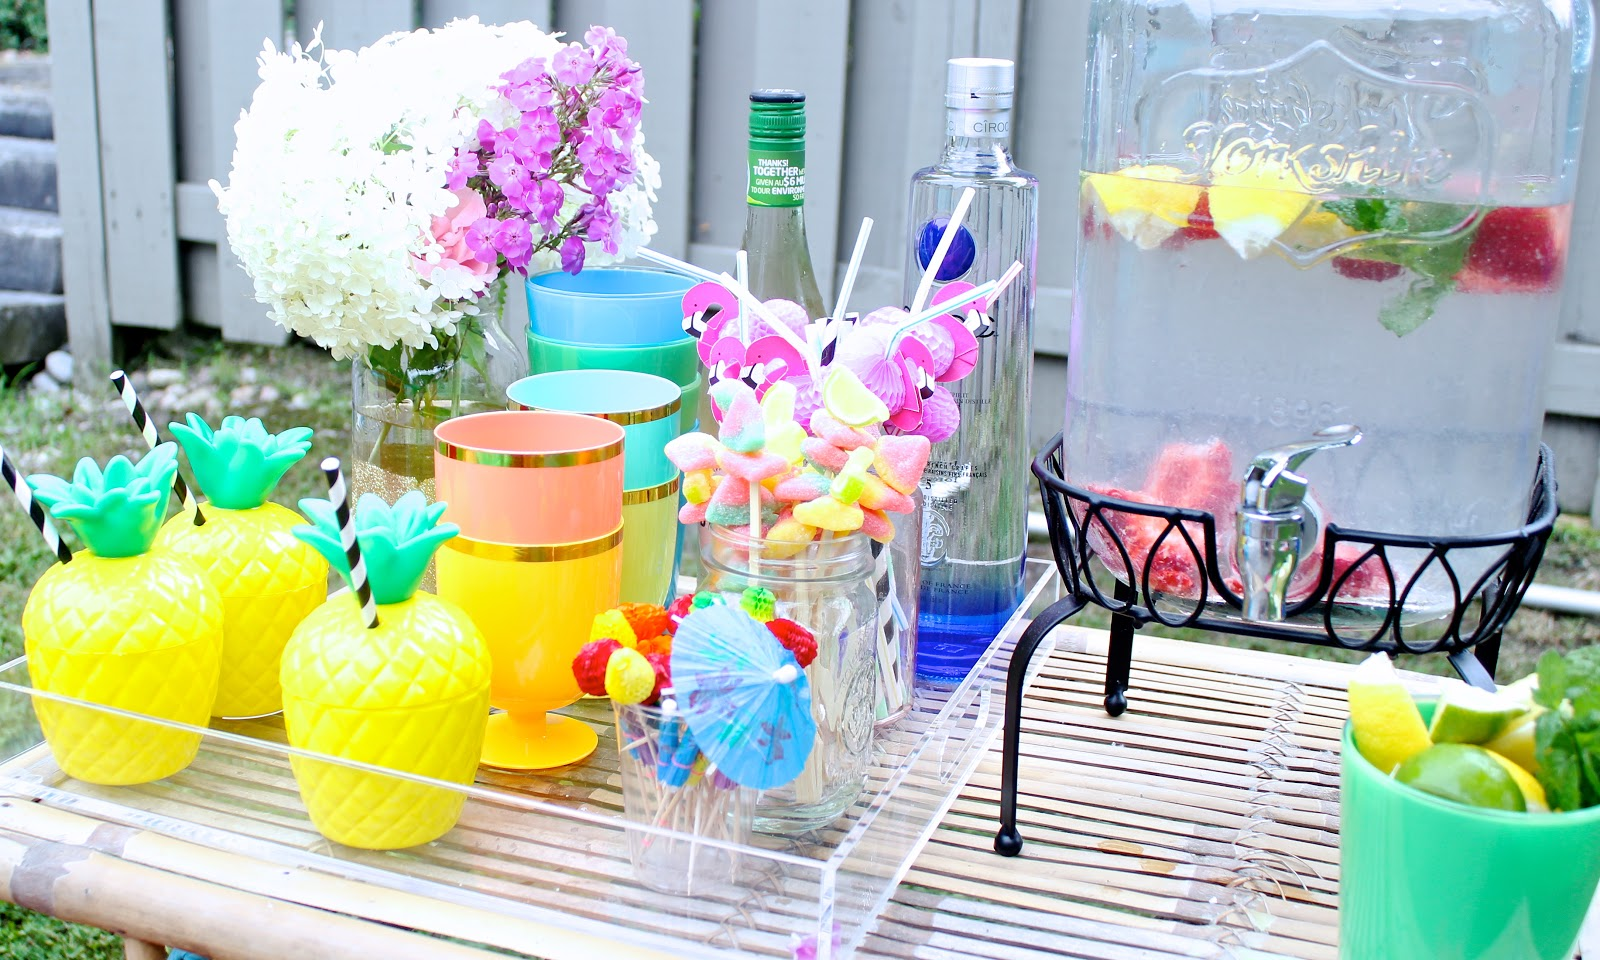 How to throw a tropical pool party pastels and pastries for Pool party dekoration